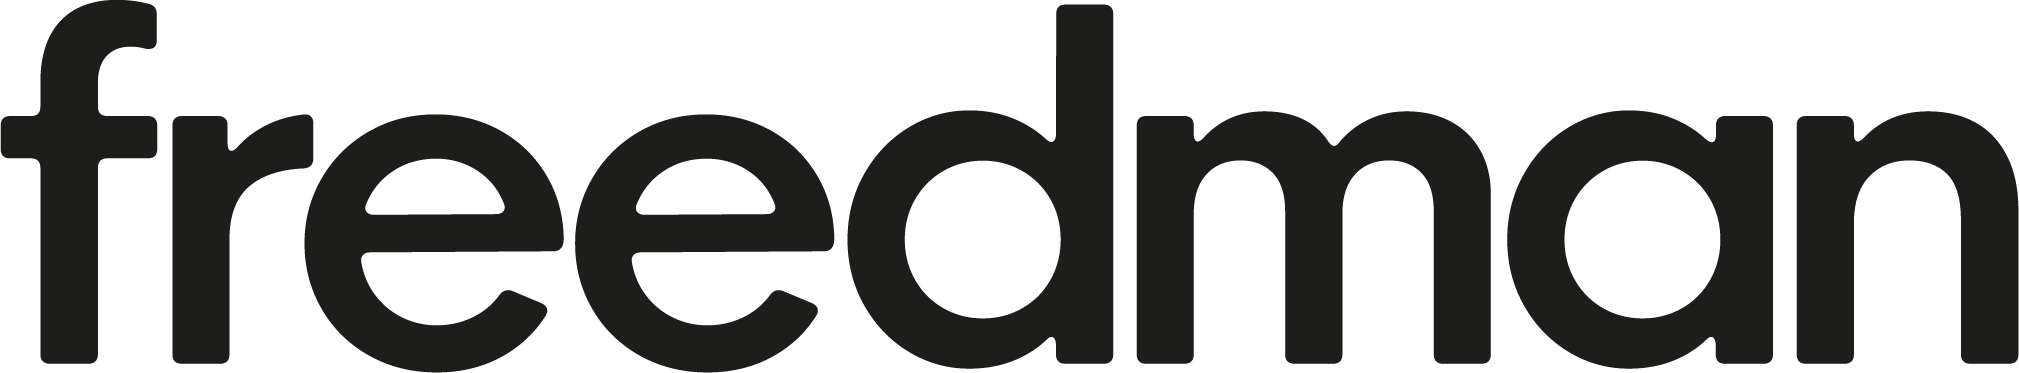 freedman_logo_final.png